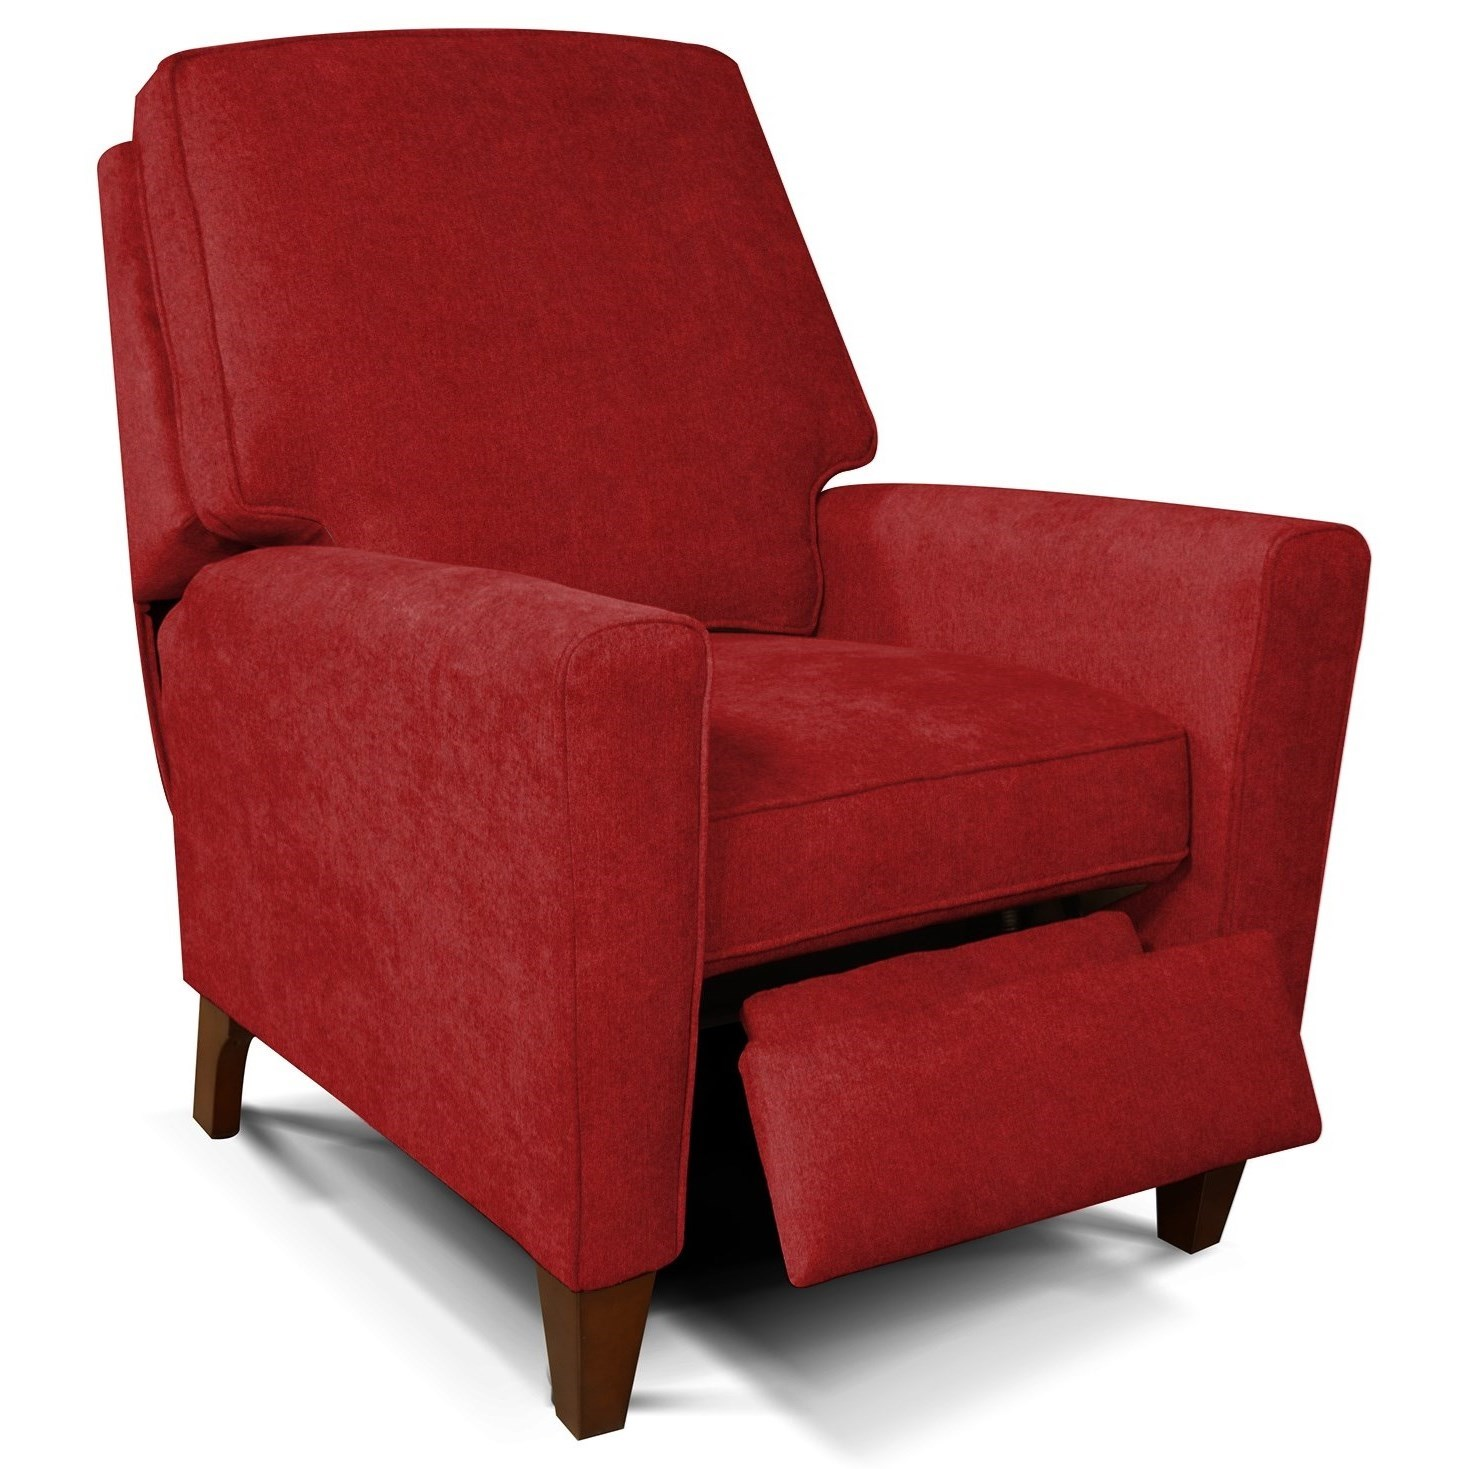 England Collegedale Living Room Motion Chair With Wooden Legs Prime Brothers Furniture High